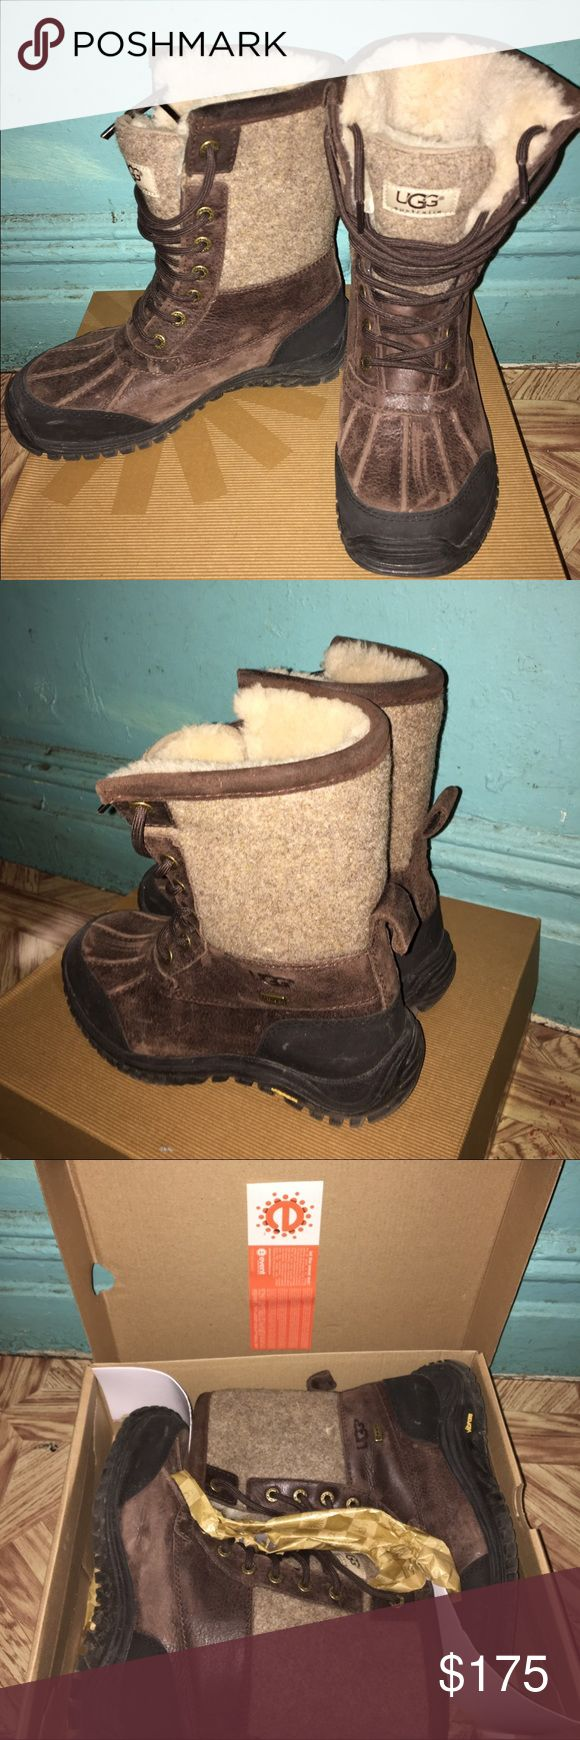 UGG Adirondack Boot II 1008465 In perfect condition only worn a few times last year. Comes with box and all. UGG Shoes Winter & Rain Boots